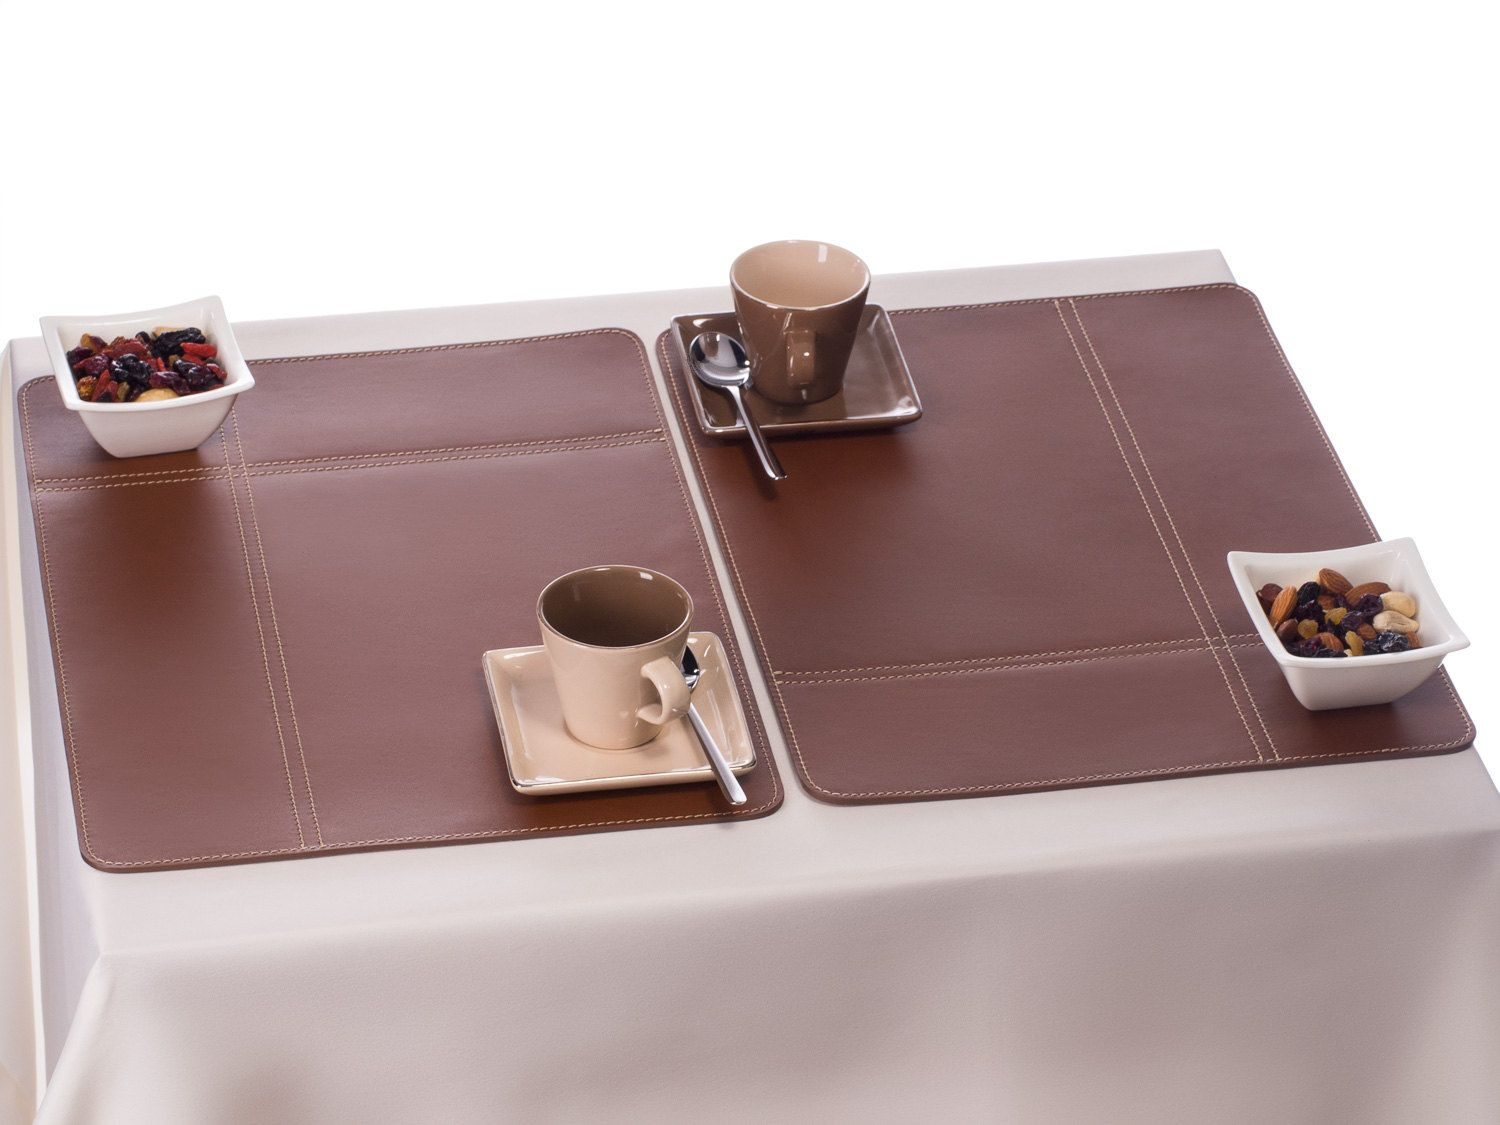 Leather Table Mats Brown Placemats Table Setting Place Mat Etsy Brown Placemats Table Mats Leather